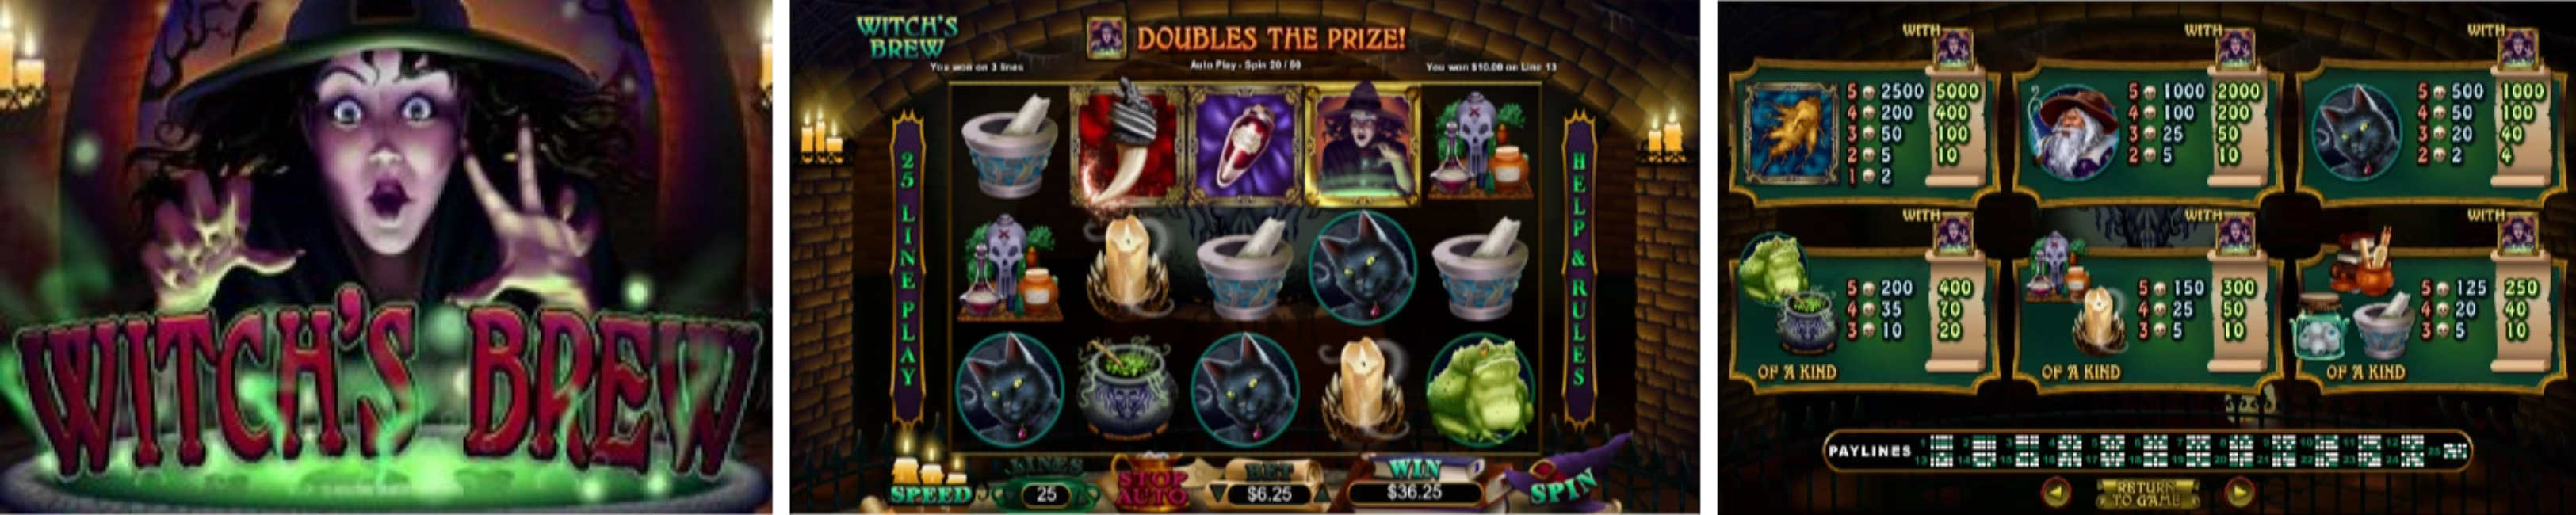 Witch's Brew Video Slots Review